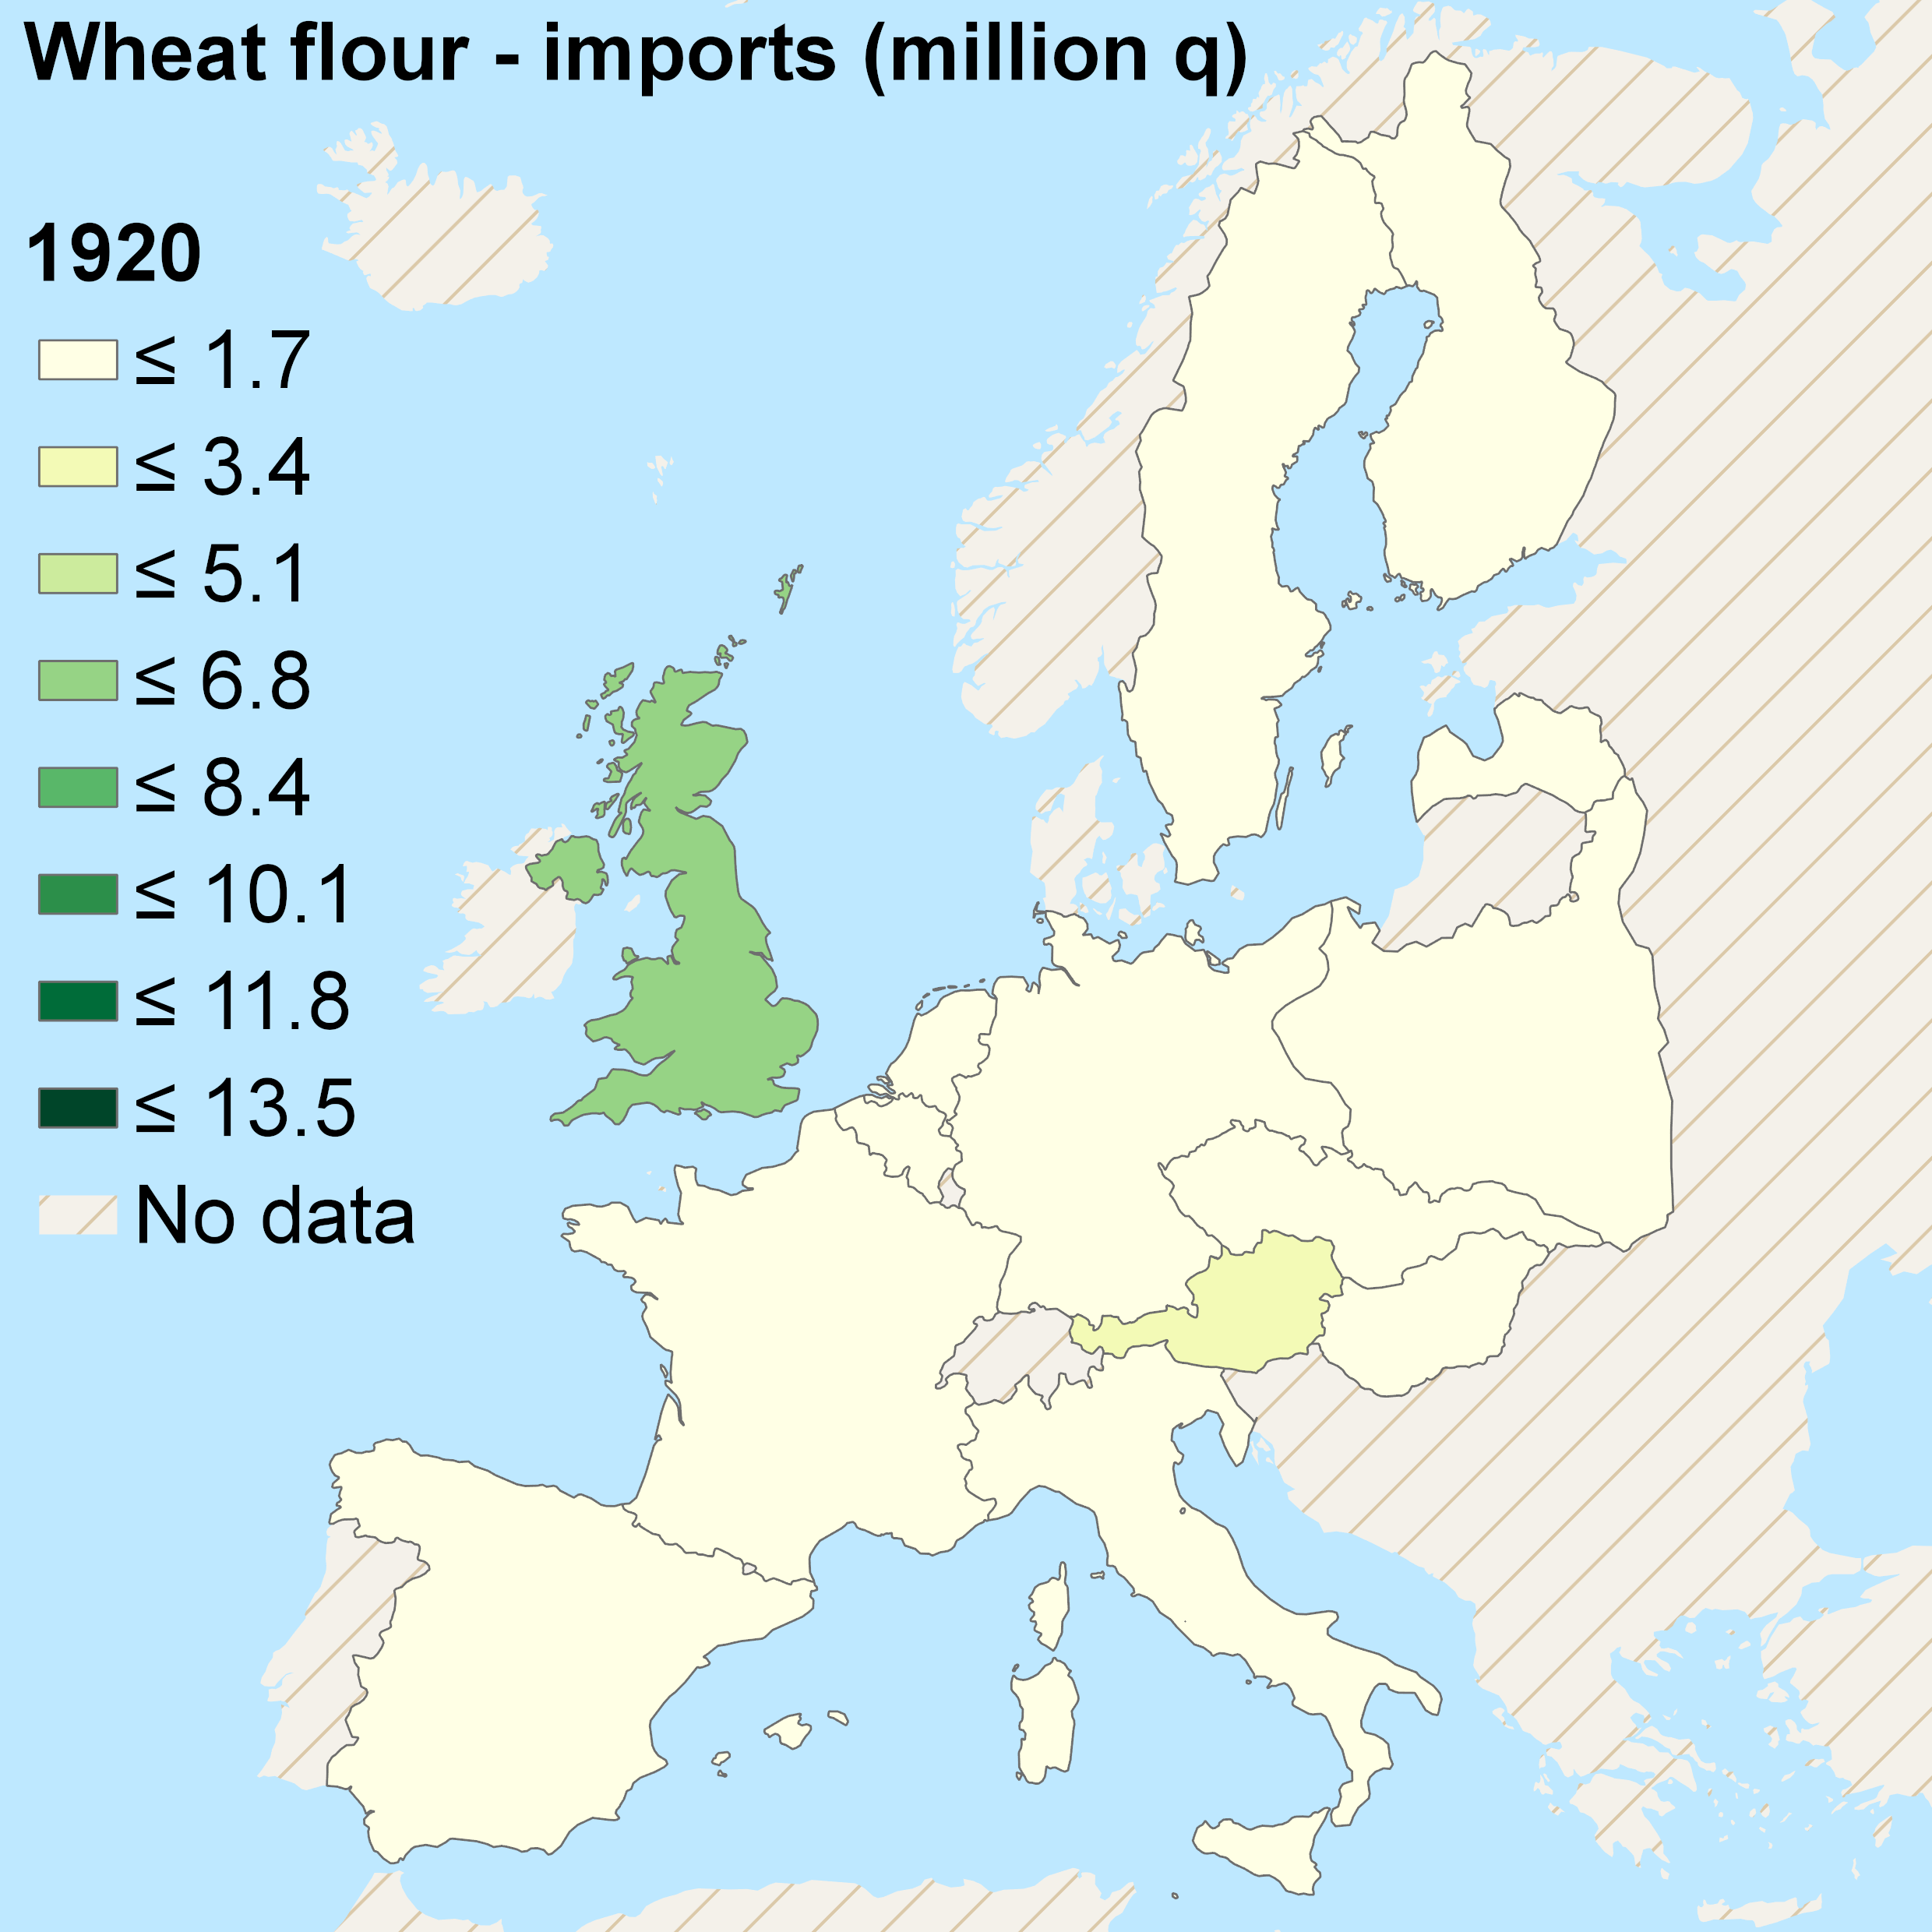 wheat-flour-imports-1920-v2